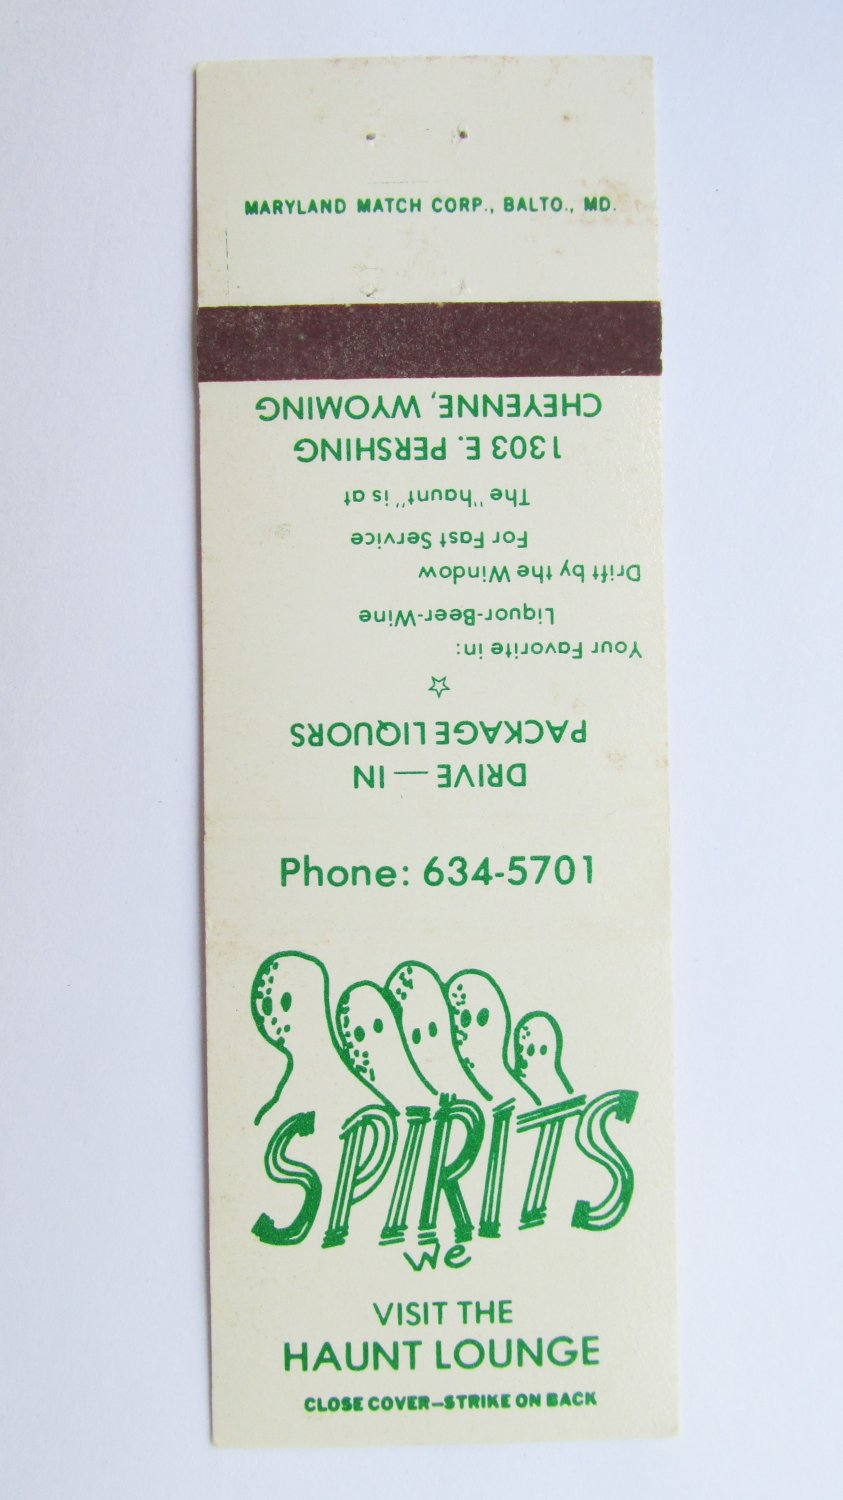 Haunt Lounge Spirits Drive-In Liquor Cheyenne, Wyoming 20 Strike Matchbook Cover